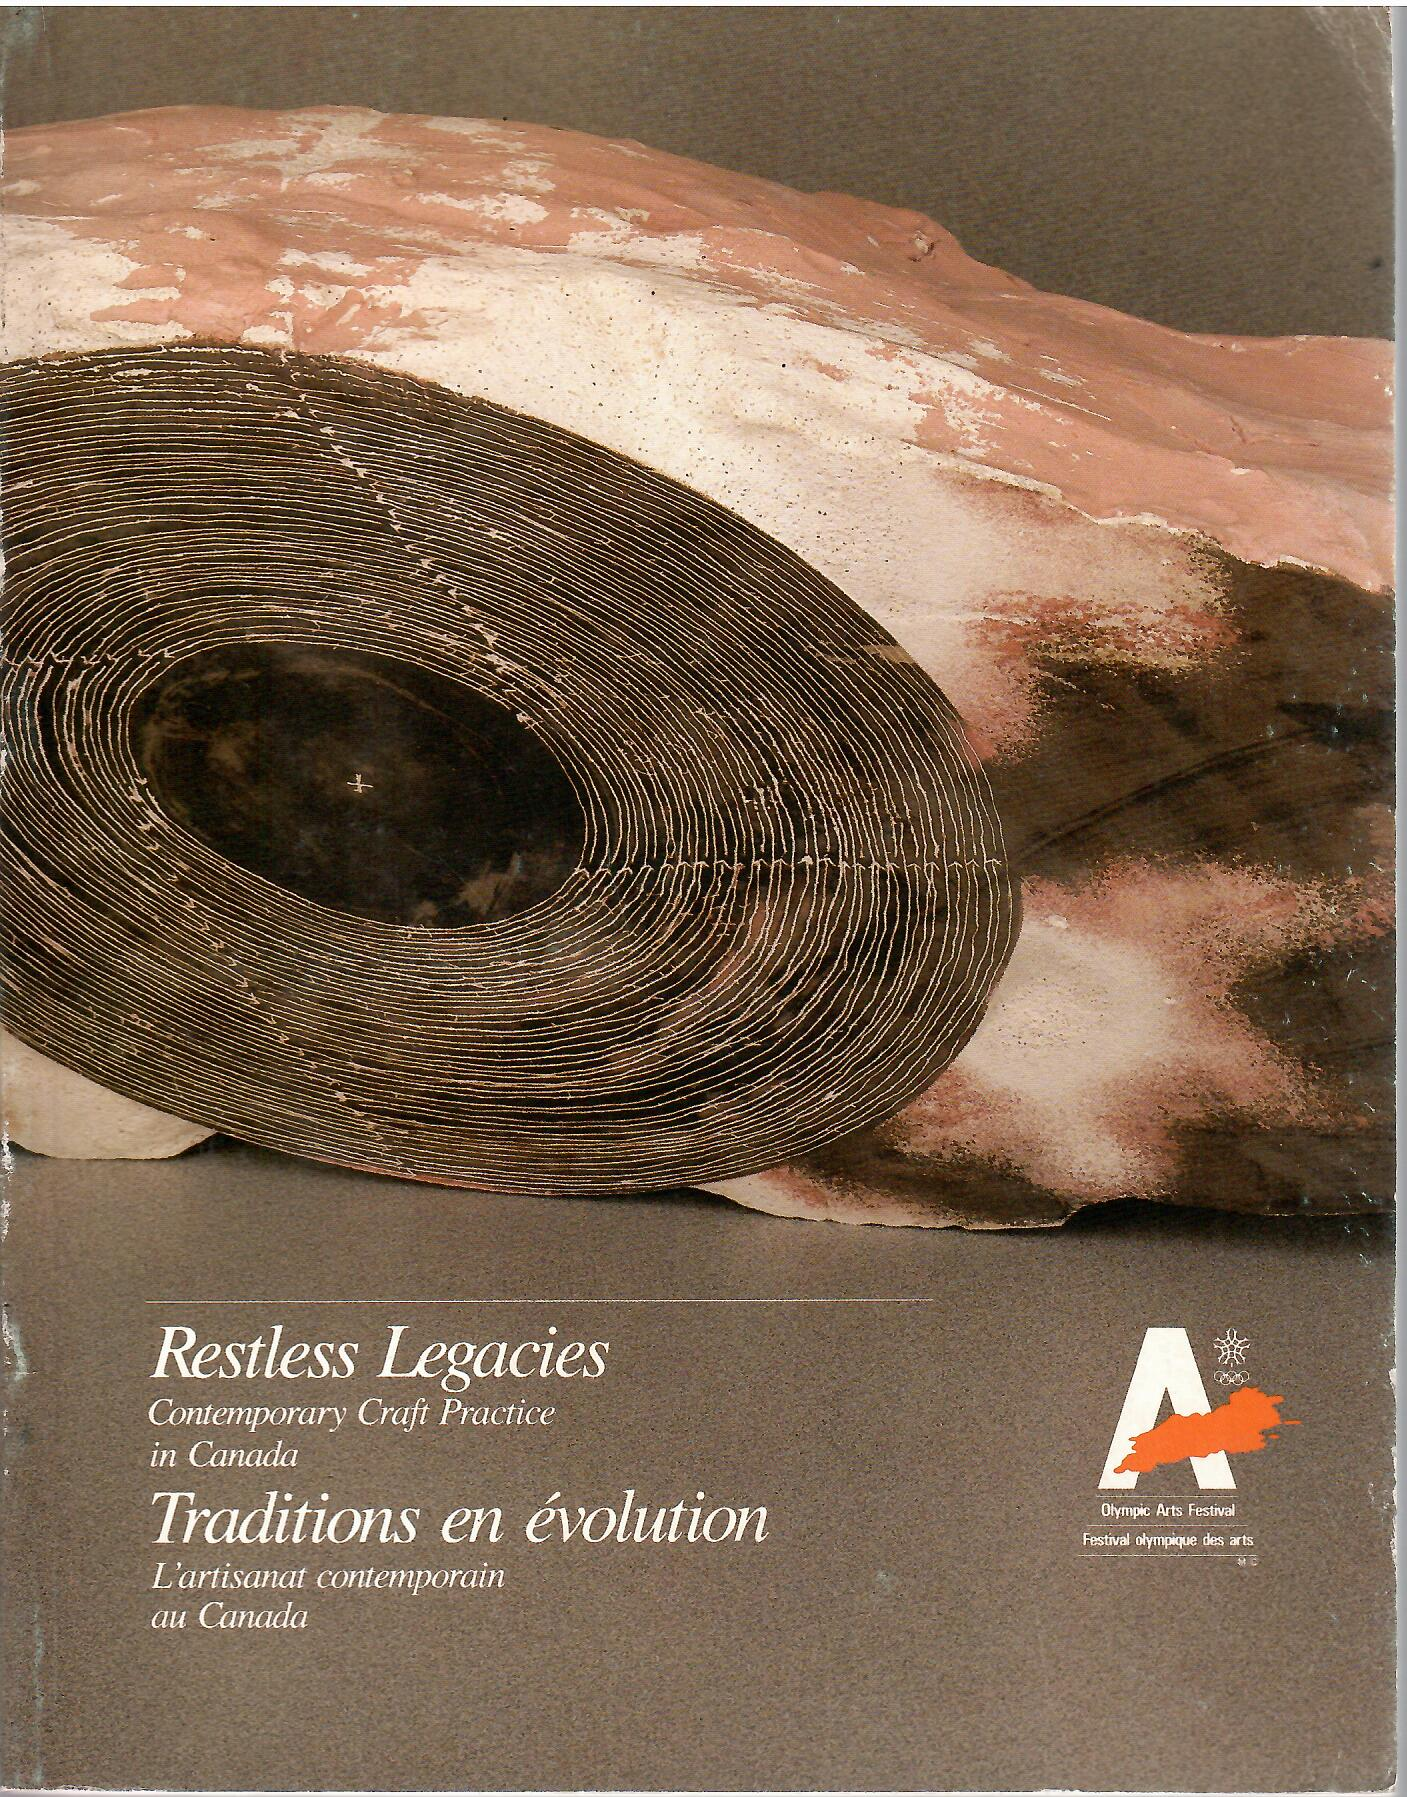 Image for Contemporary Craft Practice in Canada; RESTLESS LEGACIES